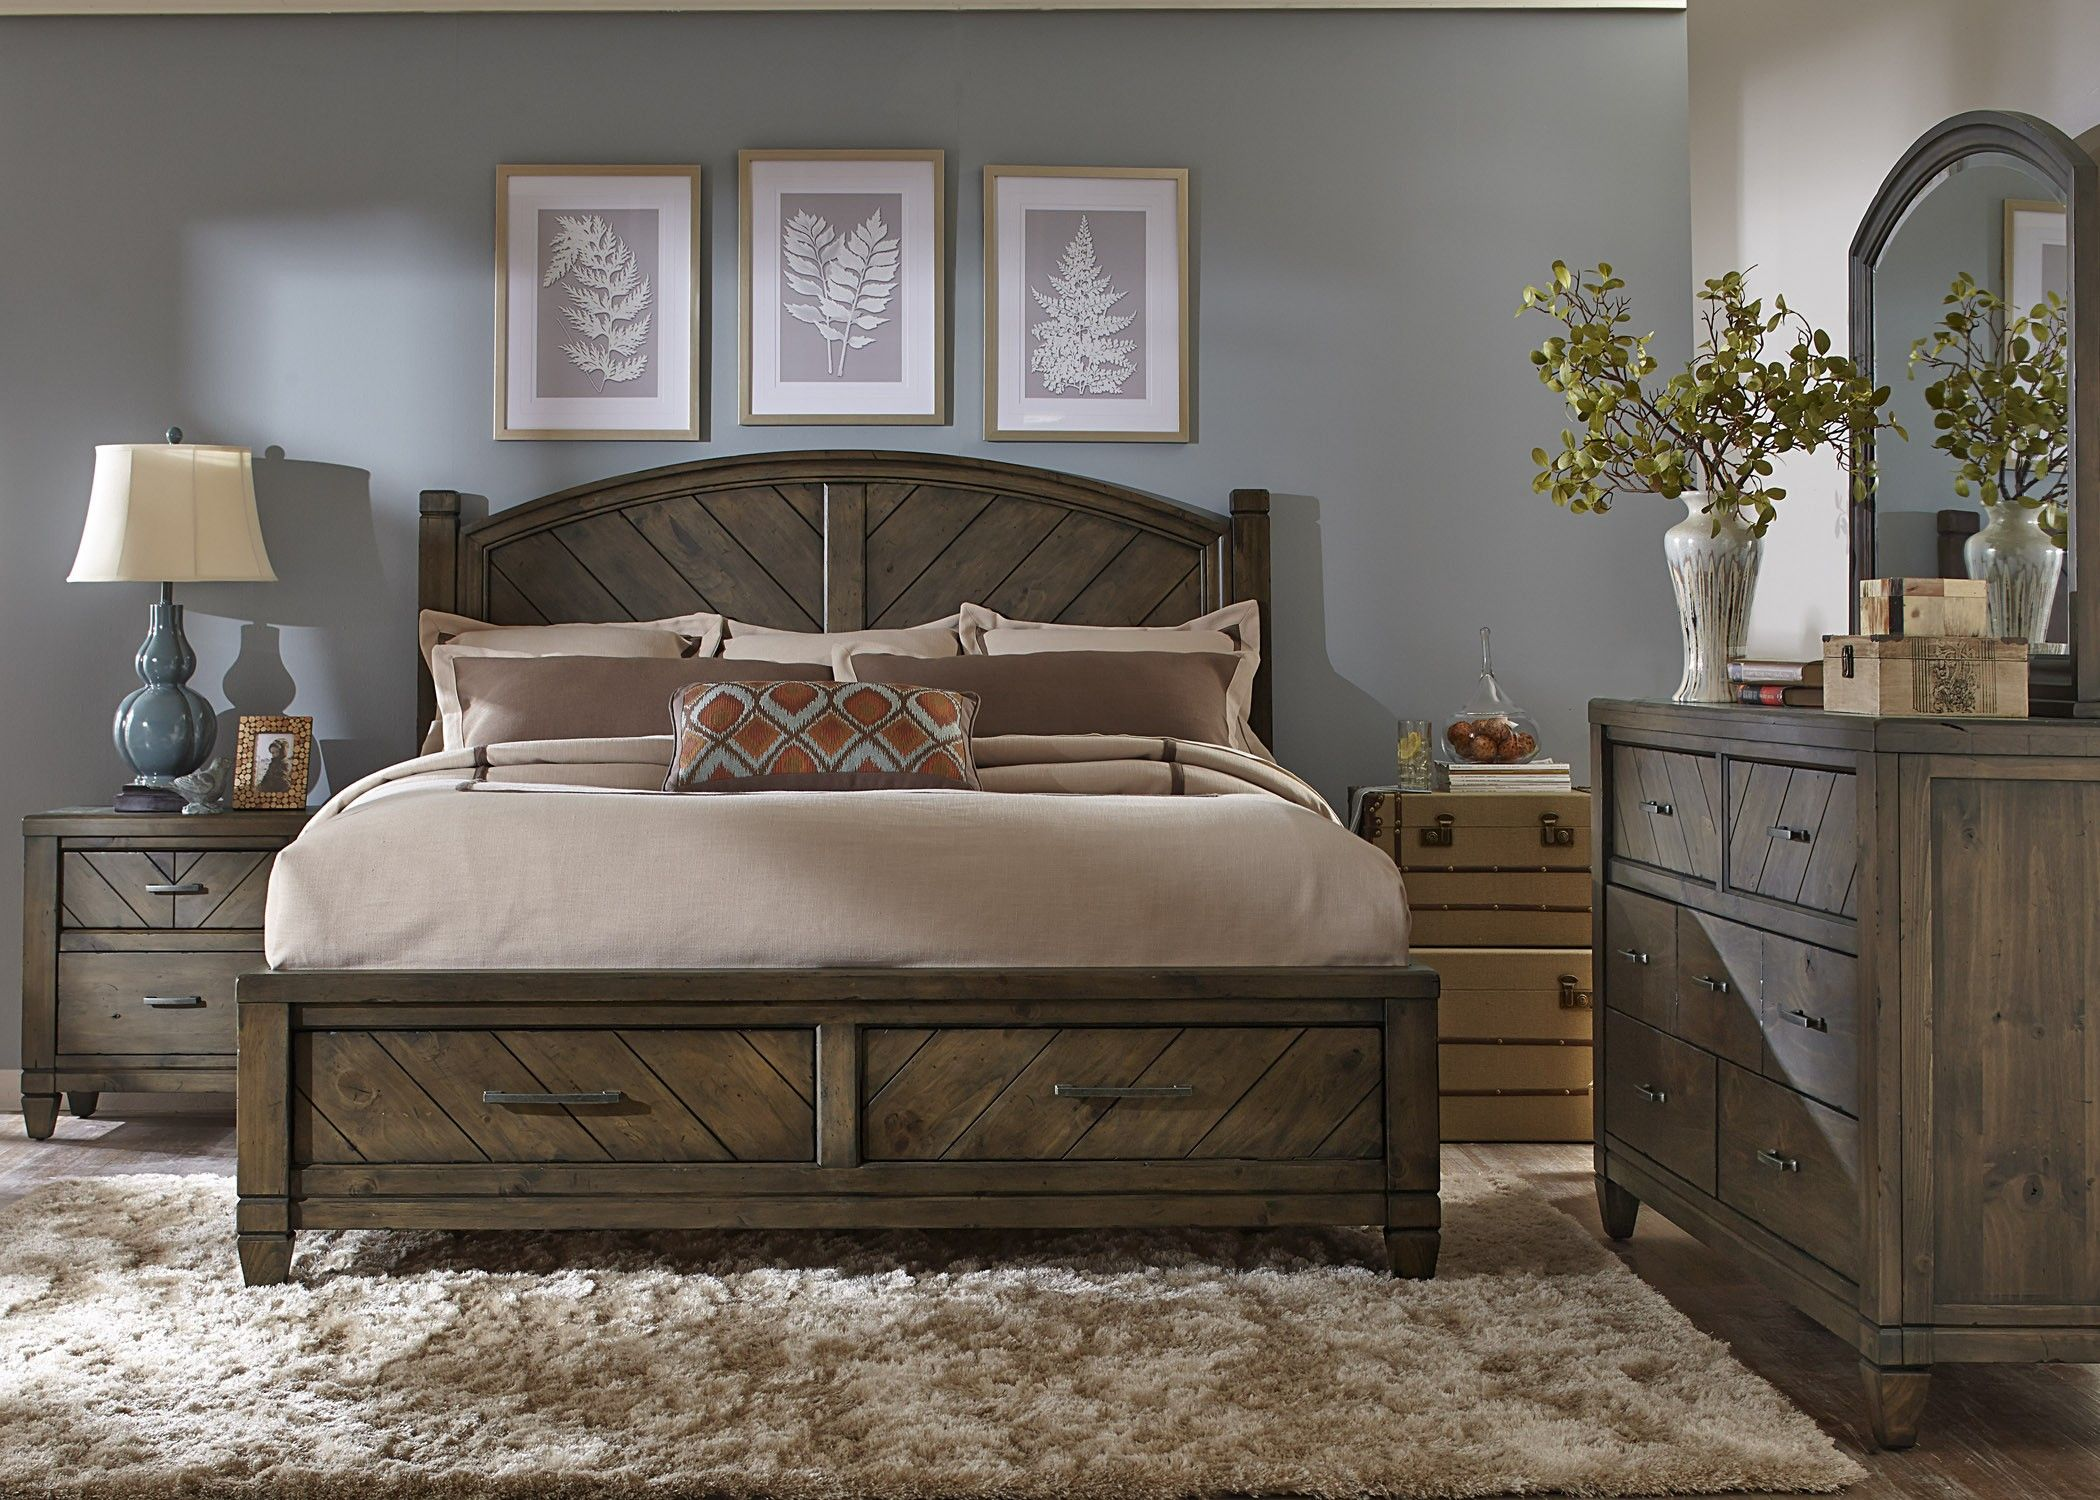 Modern Country Bedroom Decorating Ideas | Modern country ...